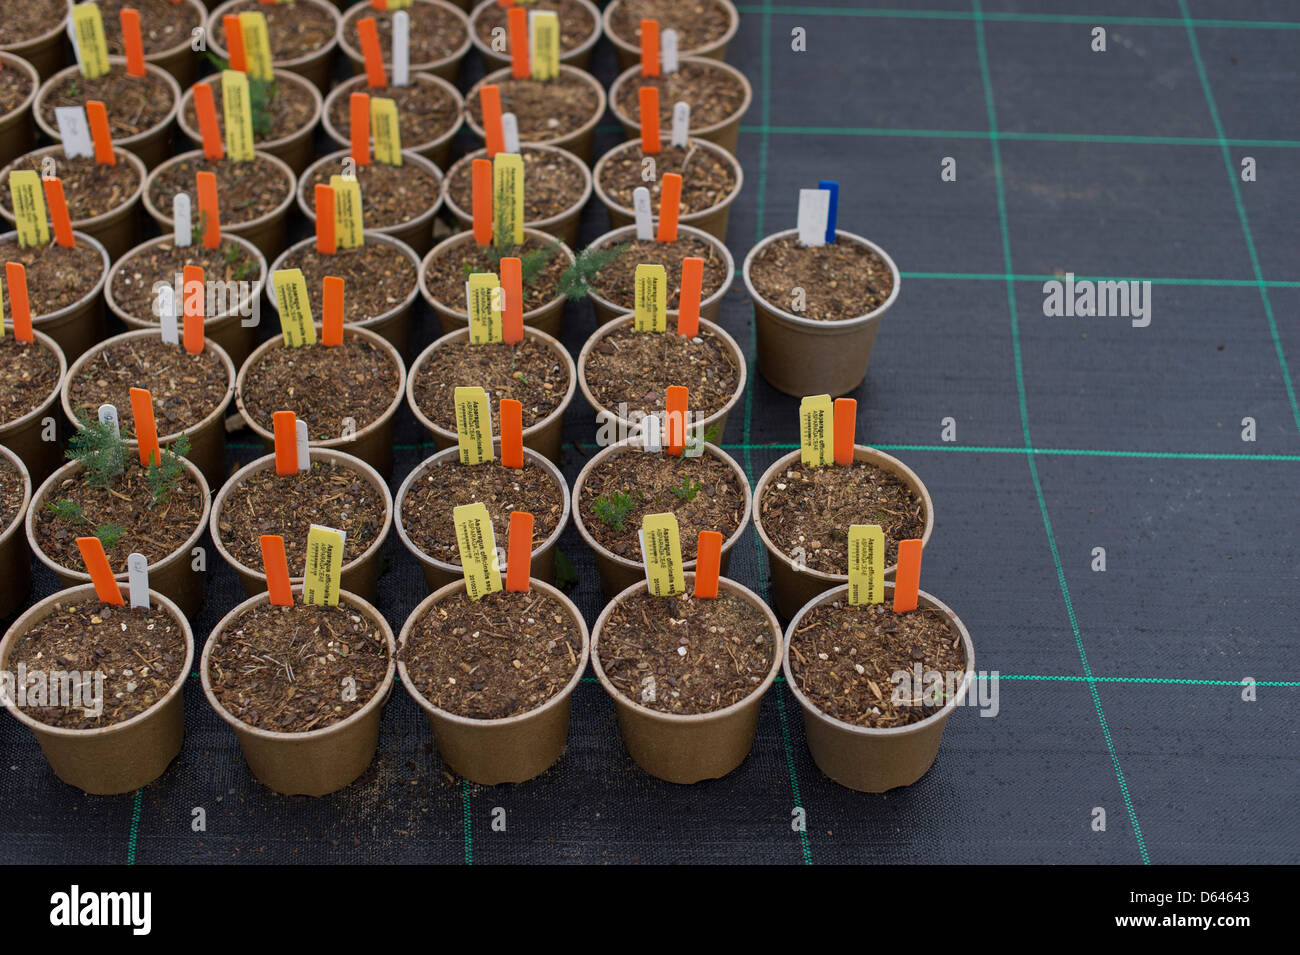 Plant pots pictured on a table at a garden nursery - Stock Image